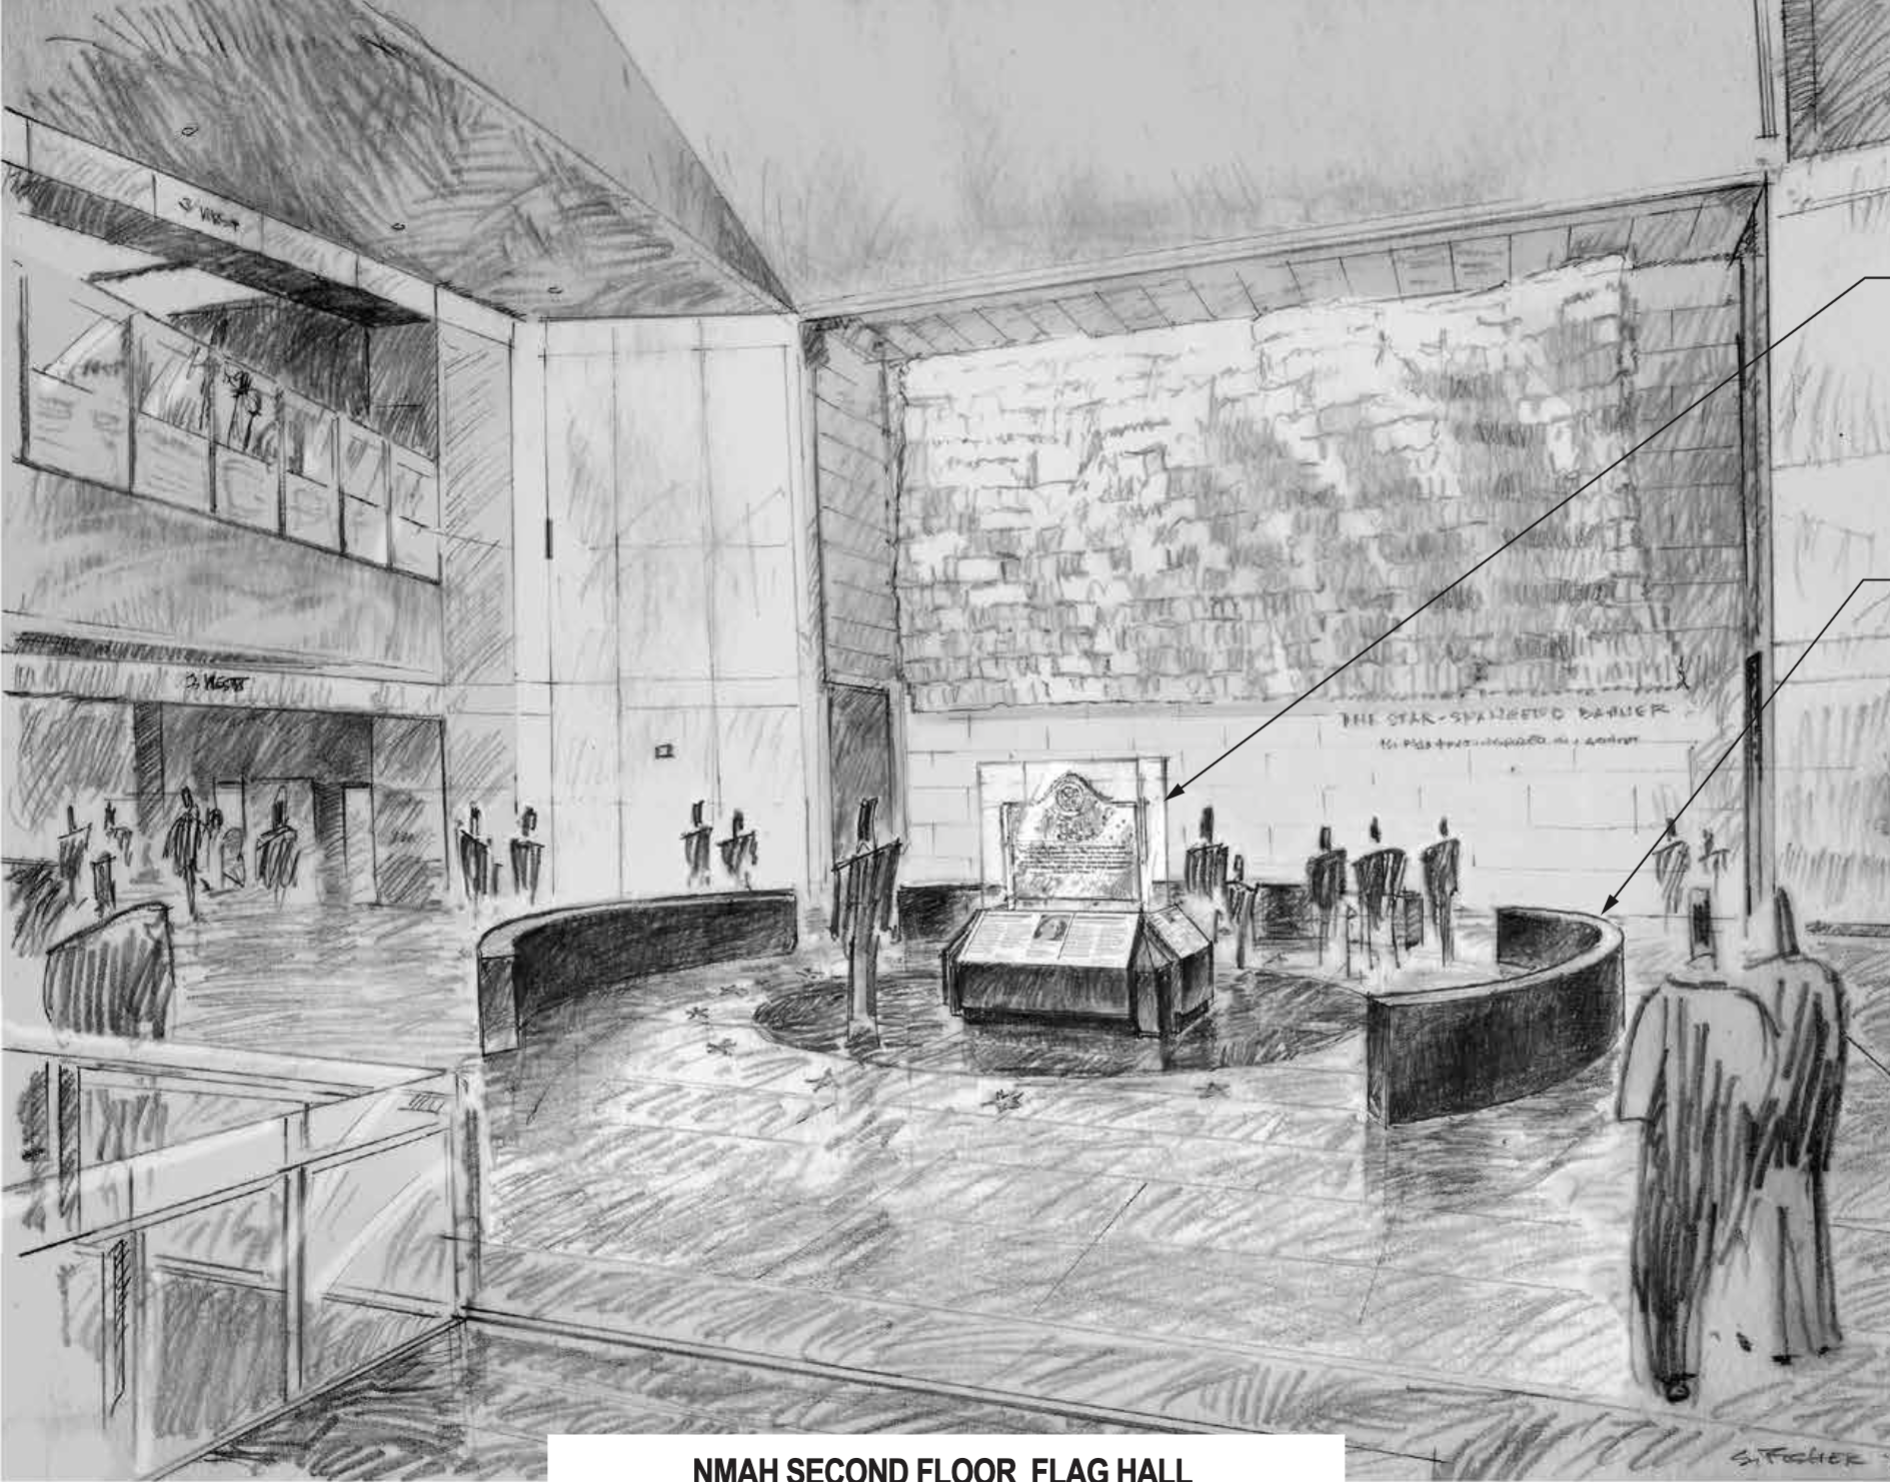 A sketch rendering of a large hall with a sign encased in glass in its center